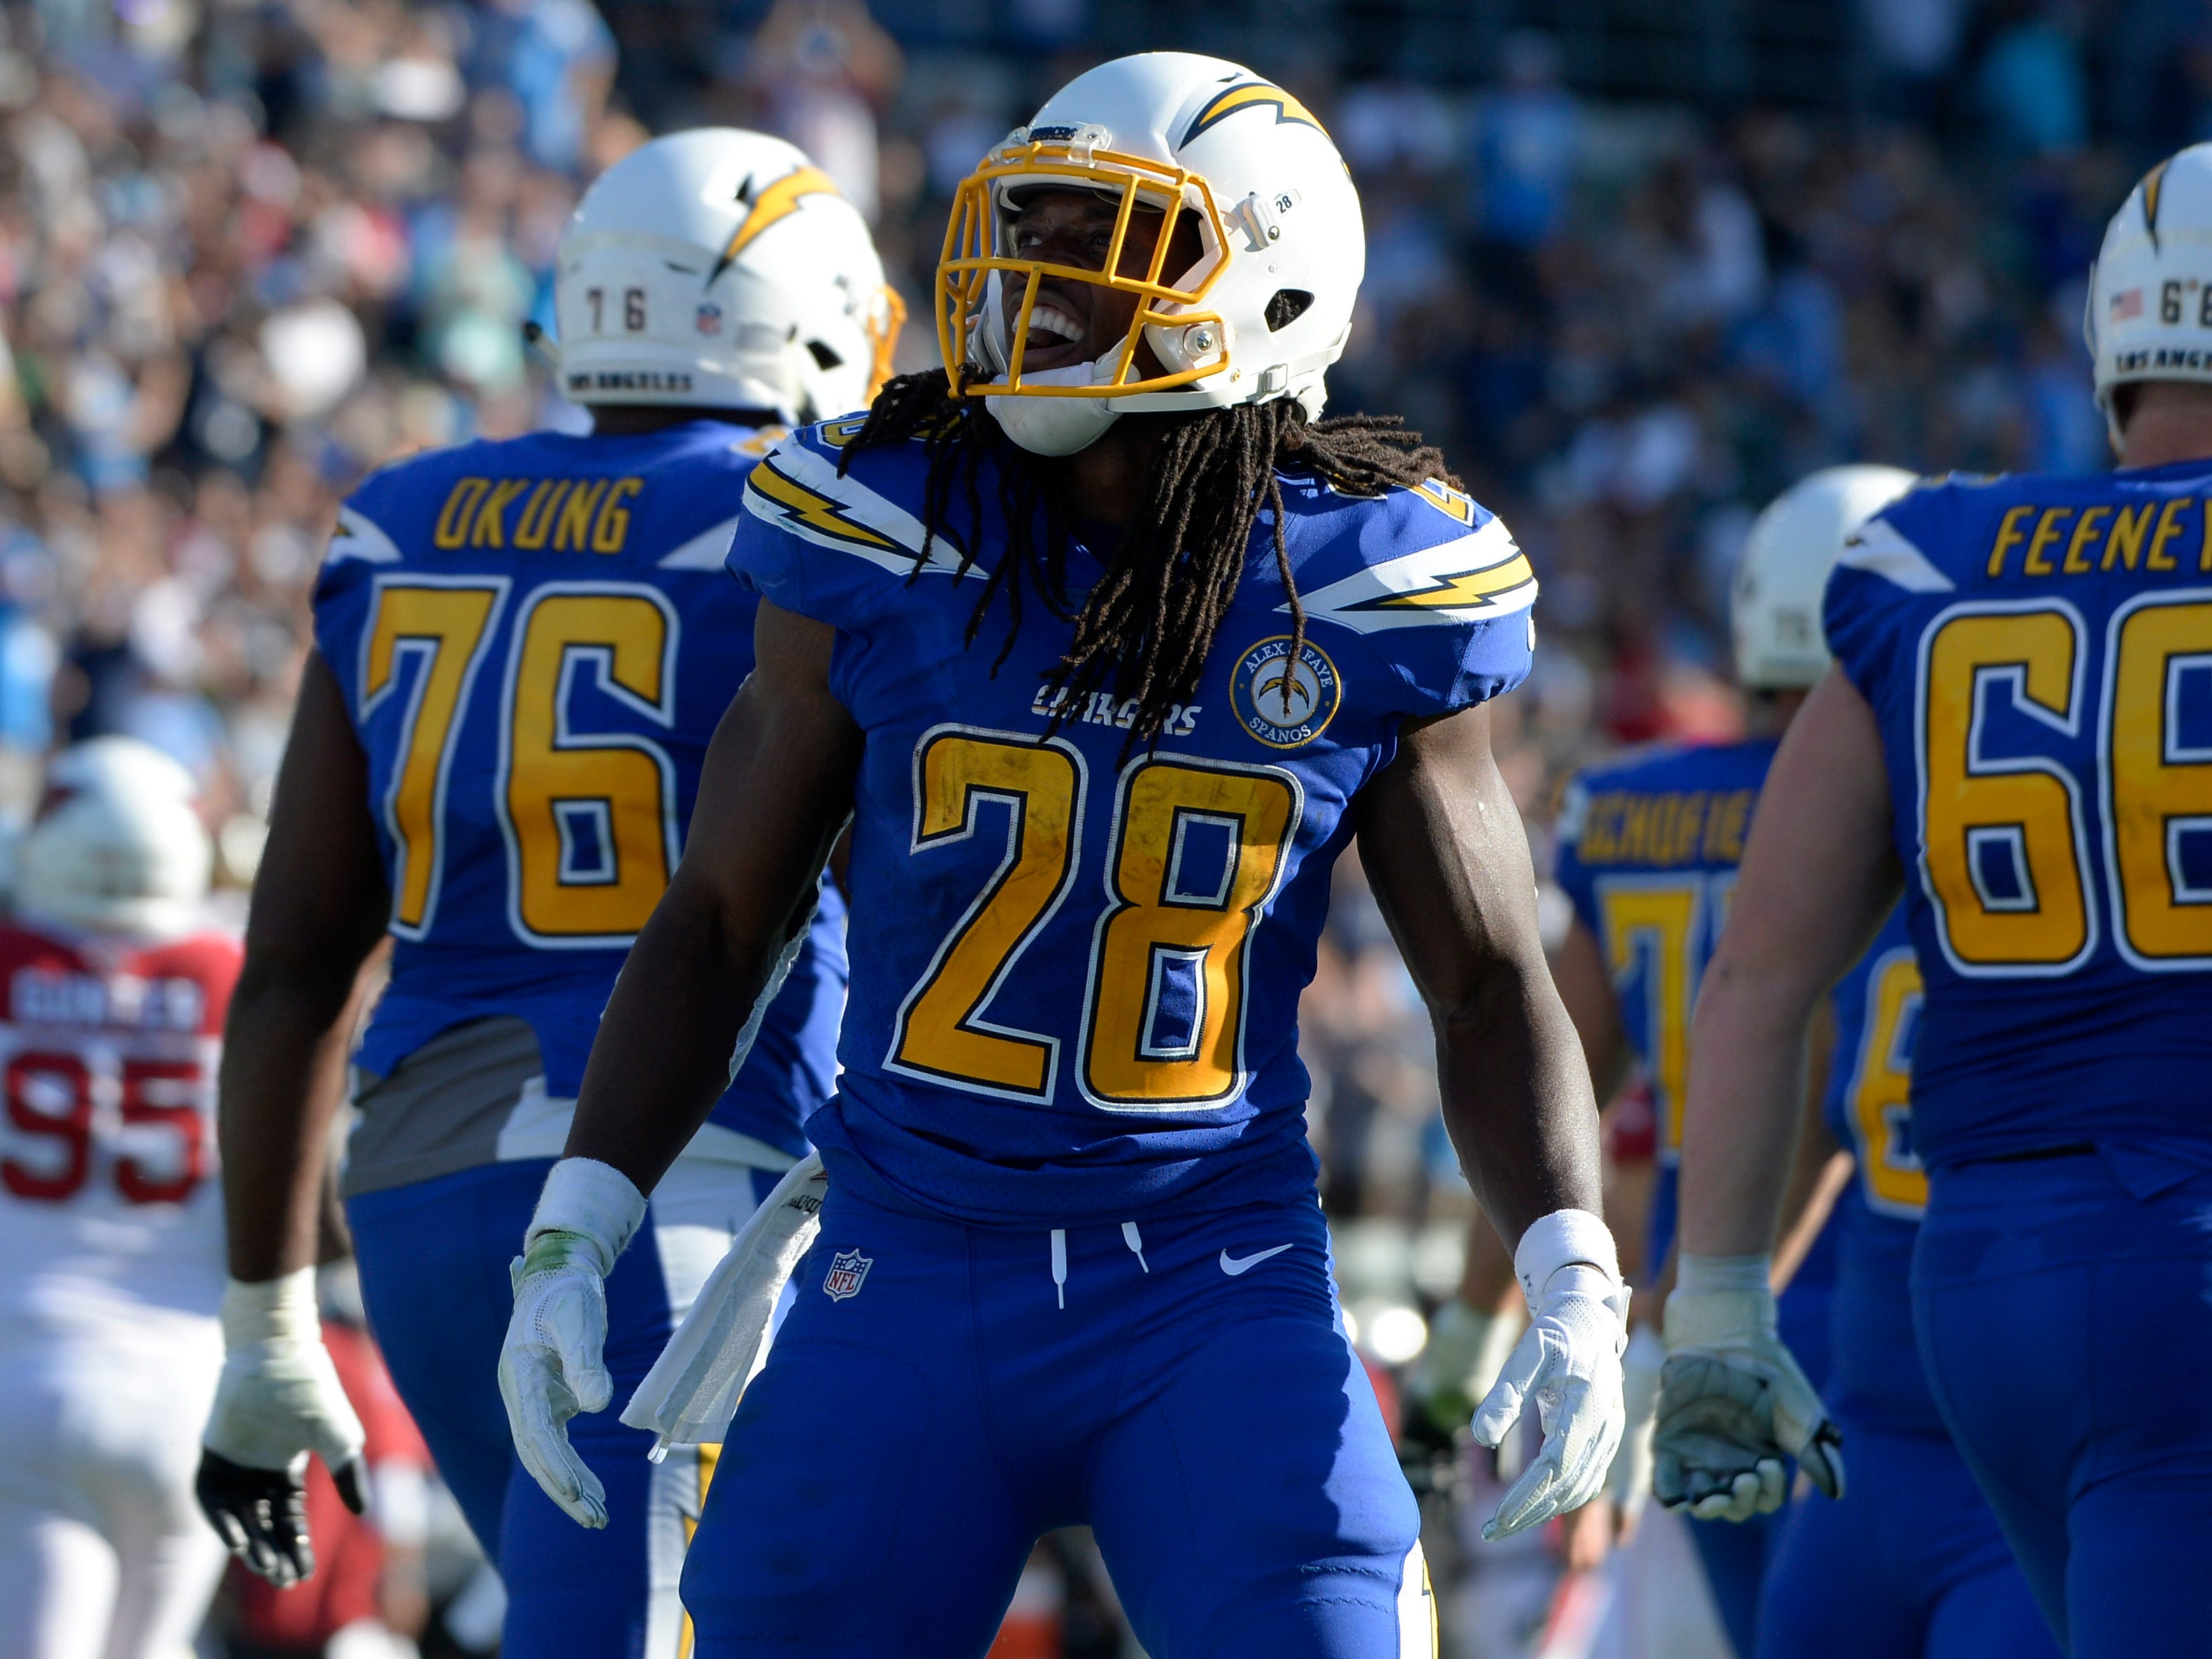 5. Chargers (6): Not sure why Melvin Gordon was still playing with Bolts up by 18, but it's kind of move franchise averse to prosperity too often makes.